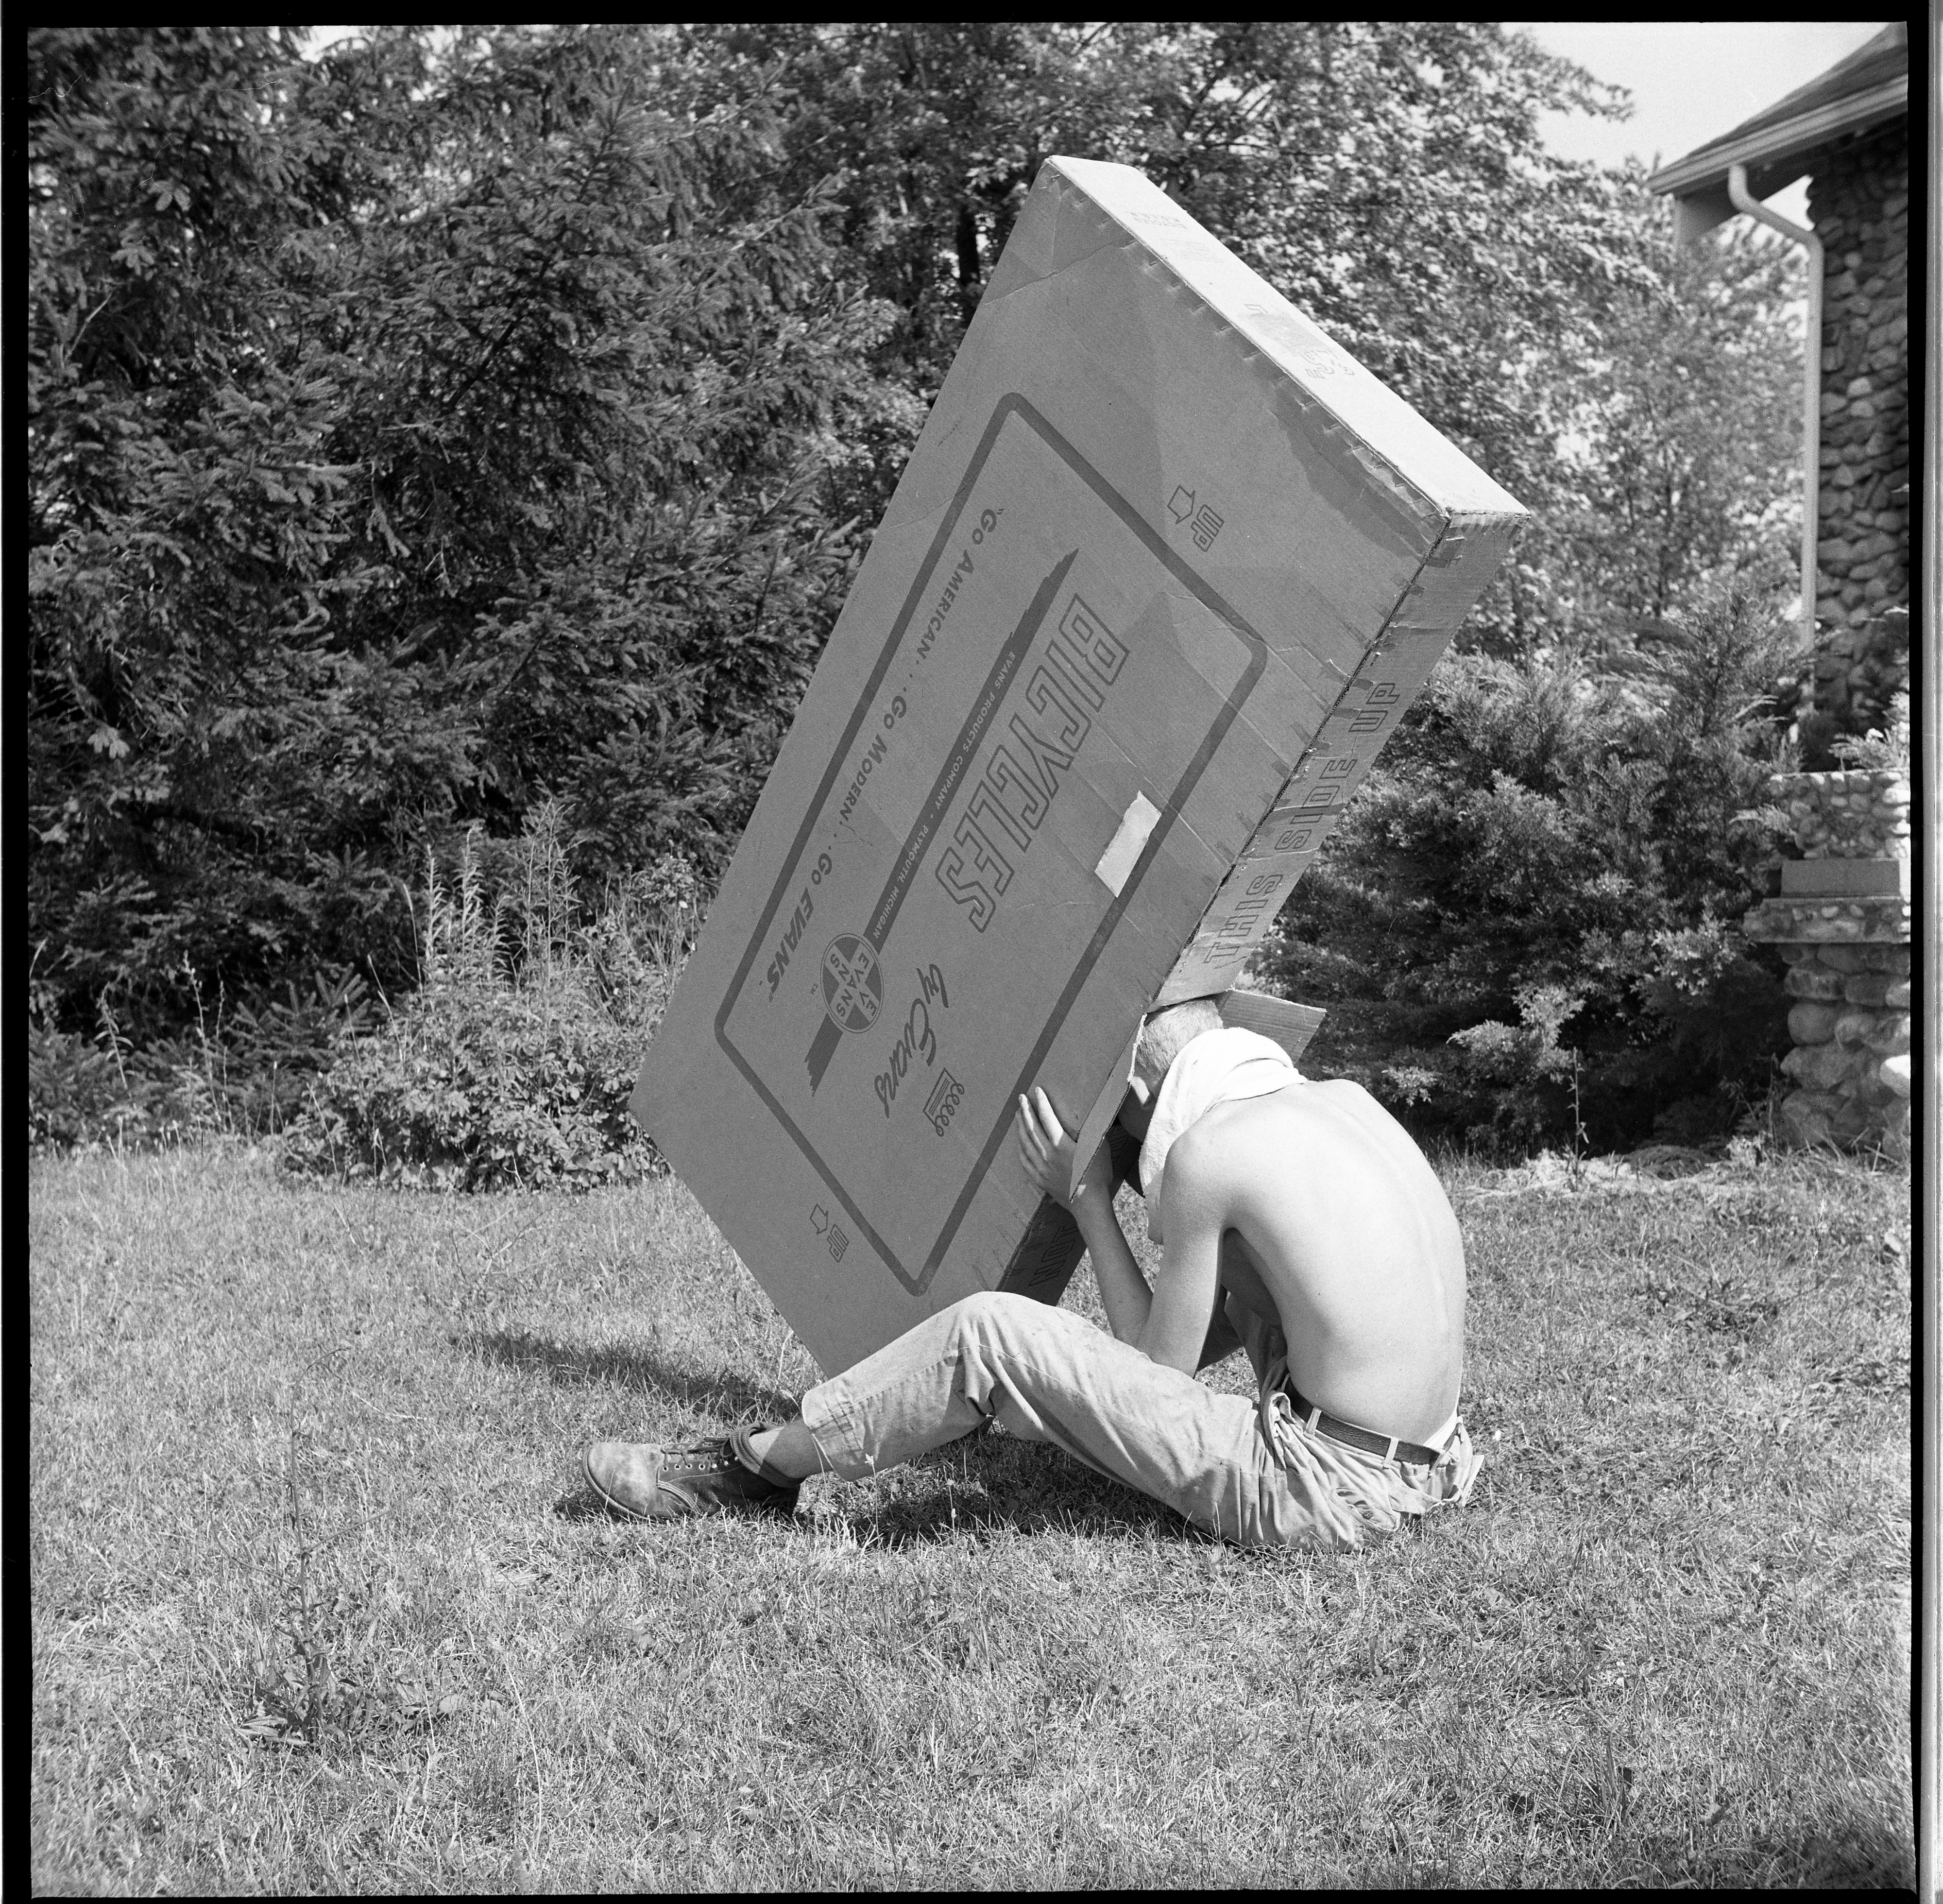 Jim Haven Uses A Pin Hole Box To Observe Solar Eclipse, July 22, 1963 image